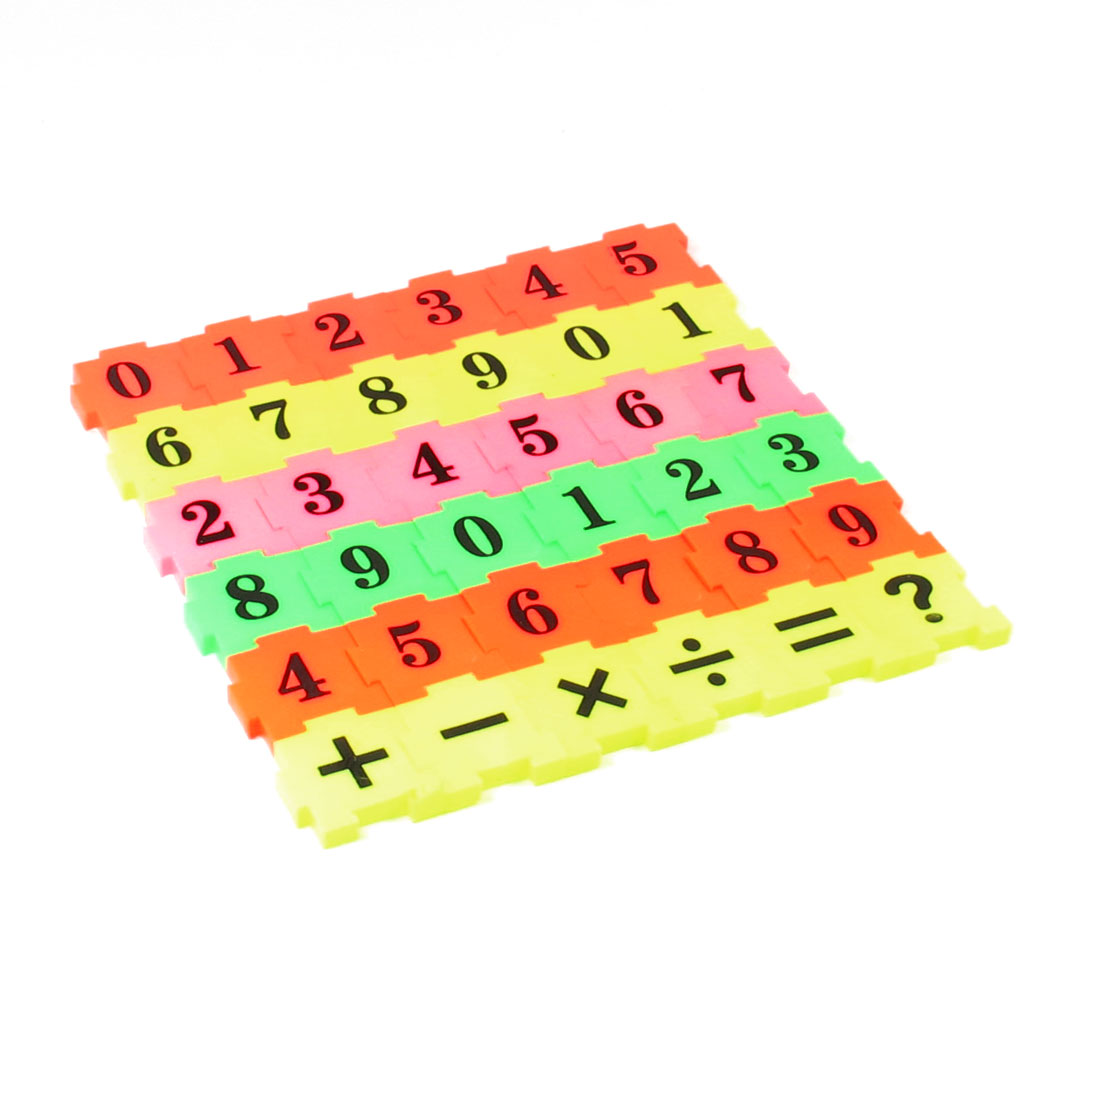 36 in 1 Multicolor Plastic Digital Intelligence Jigsaw Puzzle Set Toy for